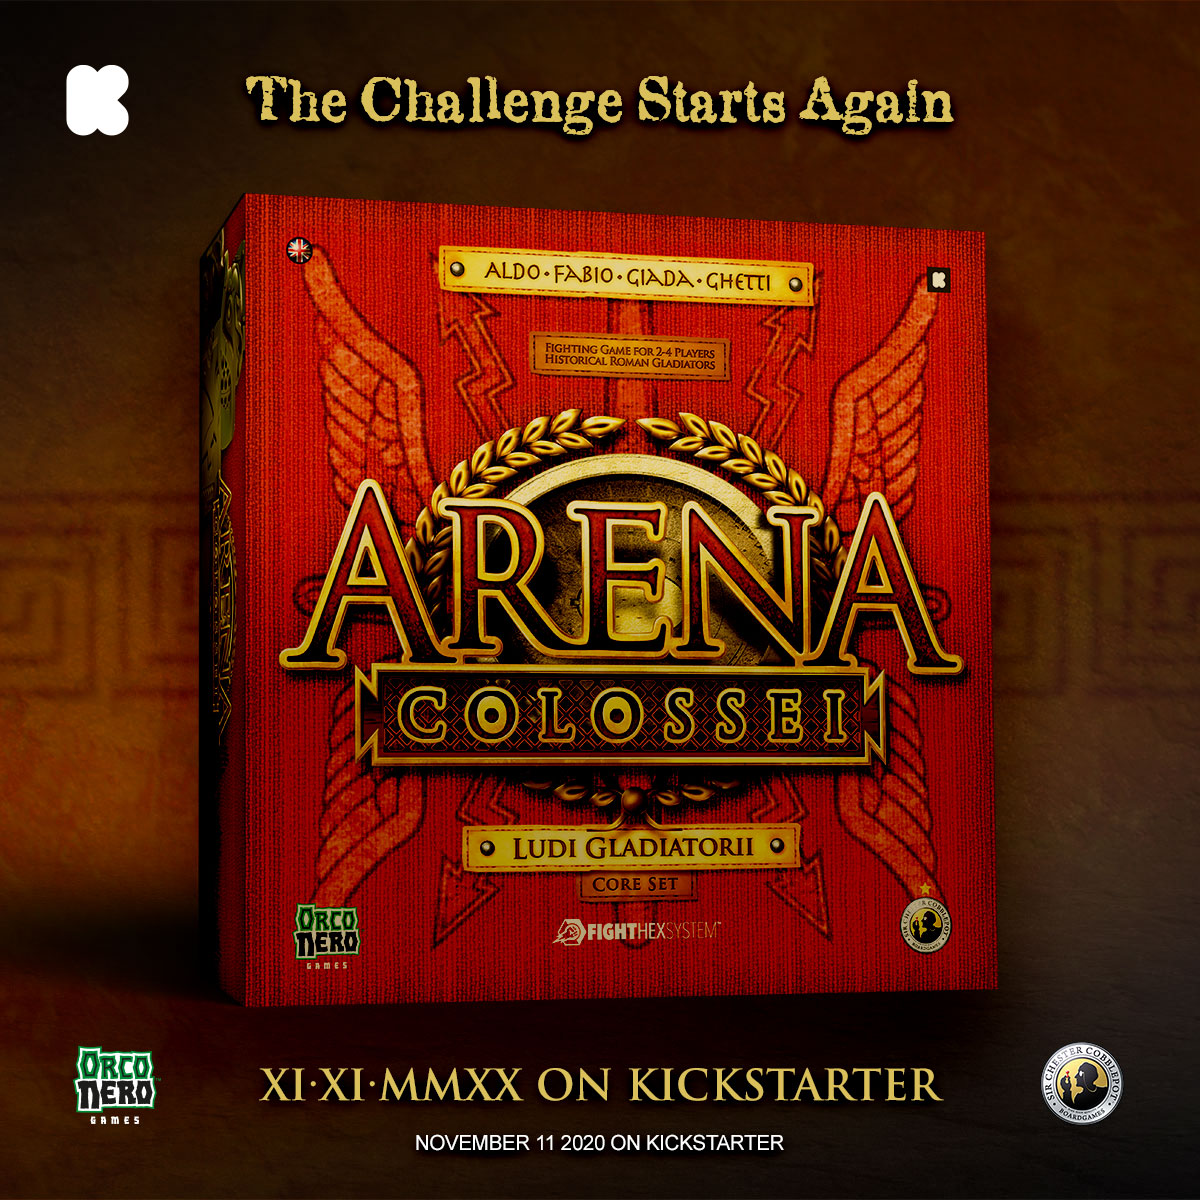 EN. Games: Arena Colossei is back on Kickstarter